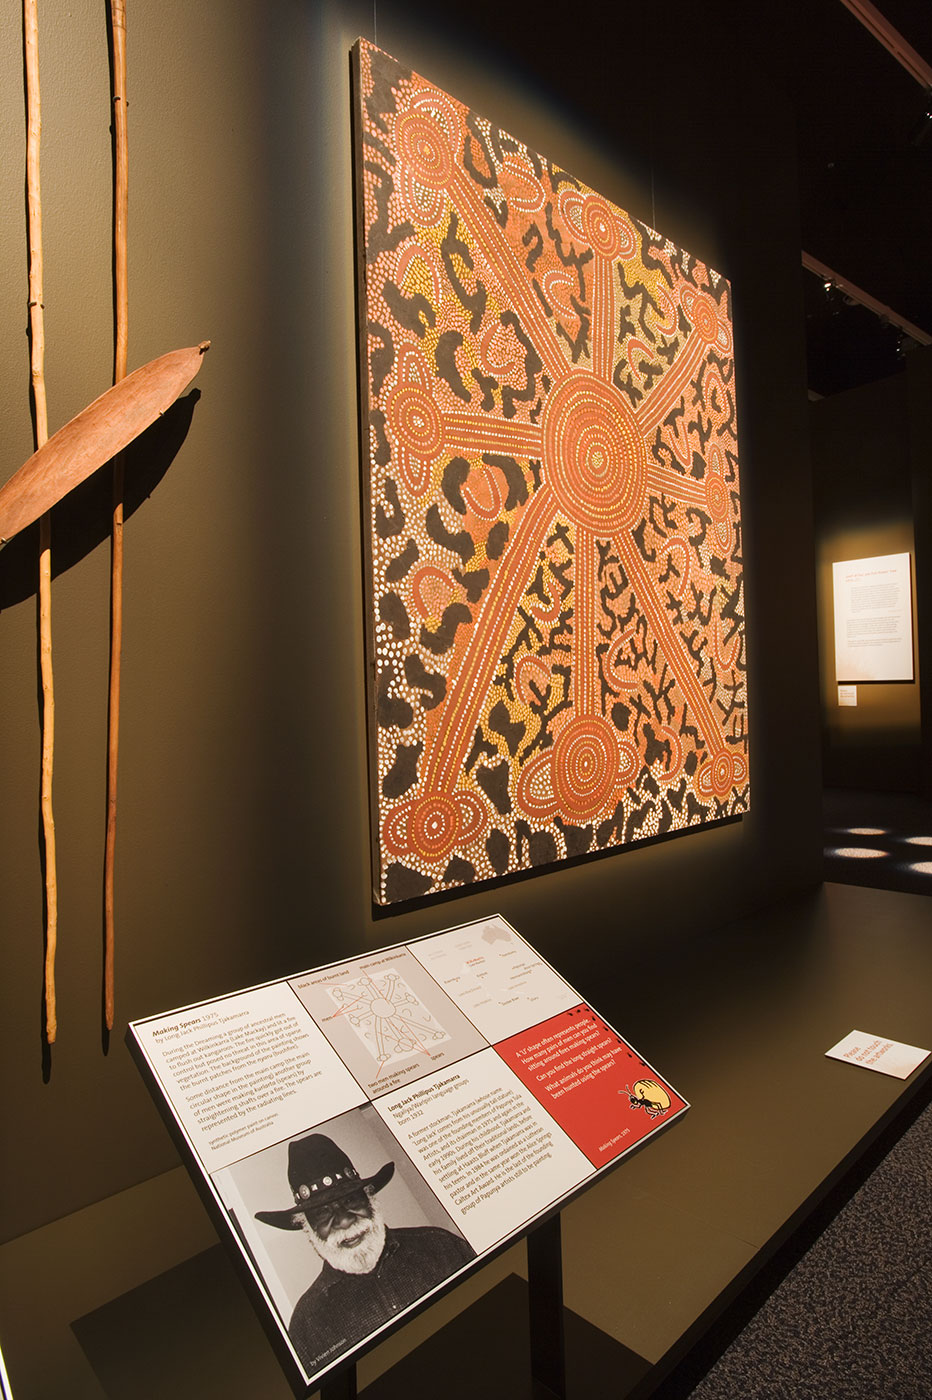 'Making Spears' dot painting, two spears and spear thrower, mounted on wall behind a text panel showing small image of artist Long Jack Phillipus Tjakamarra. - click to view larger image